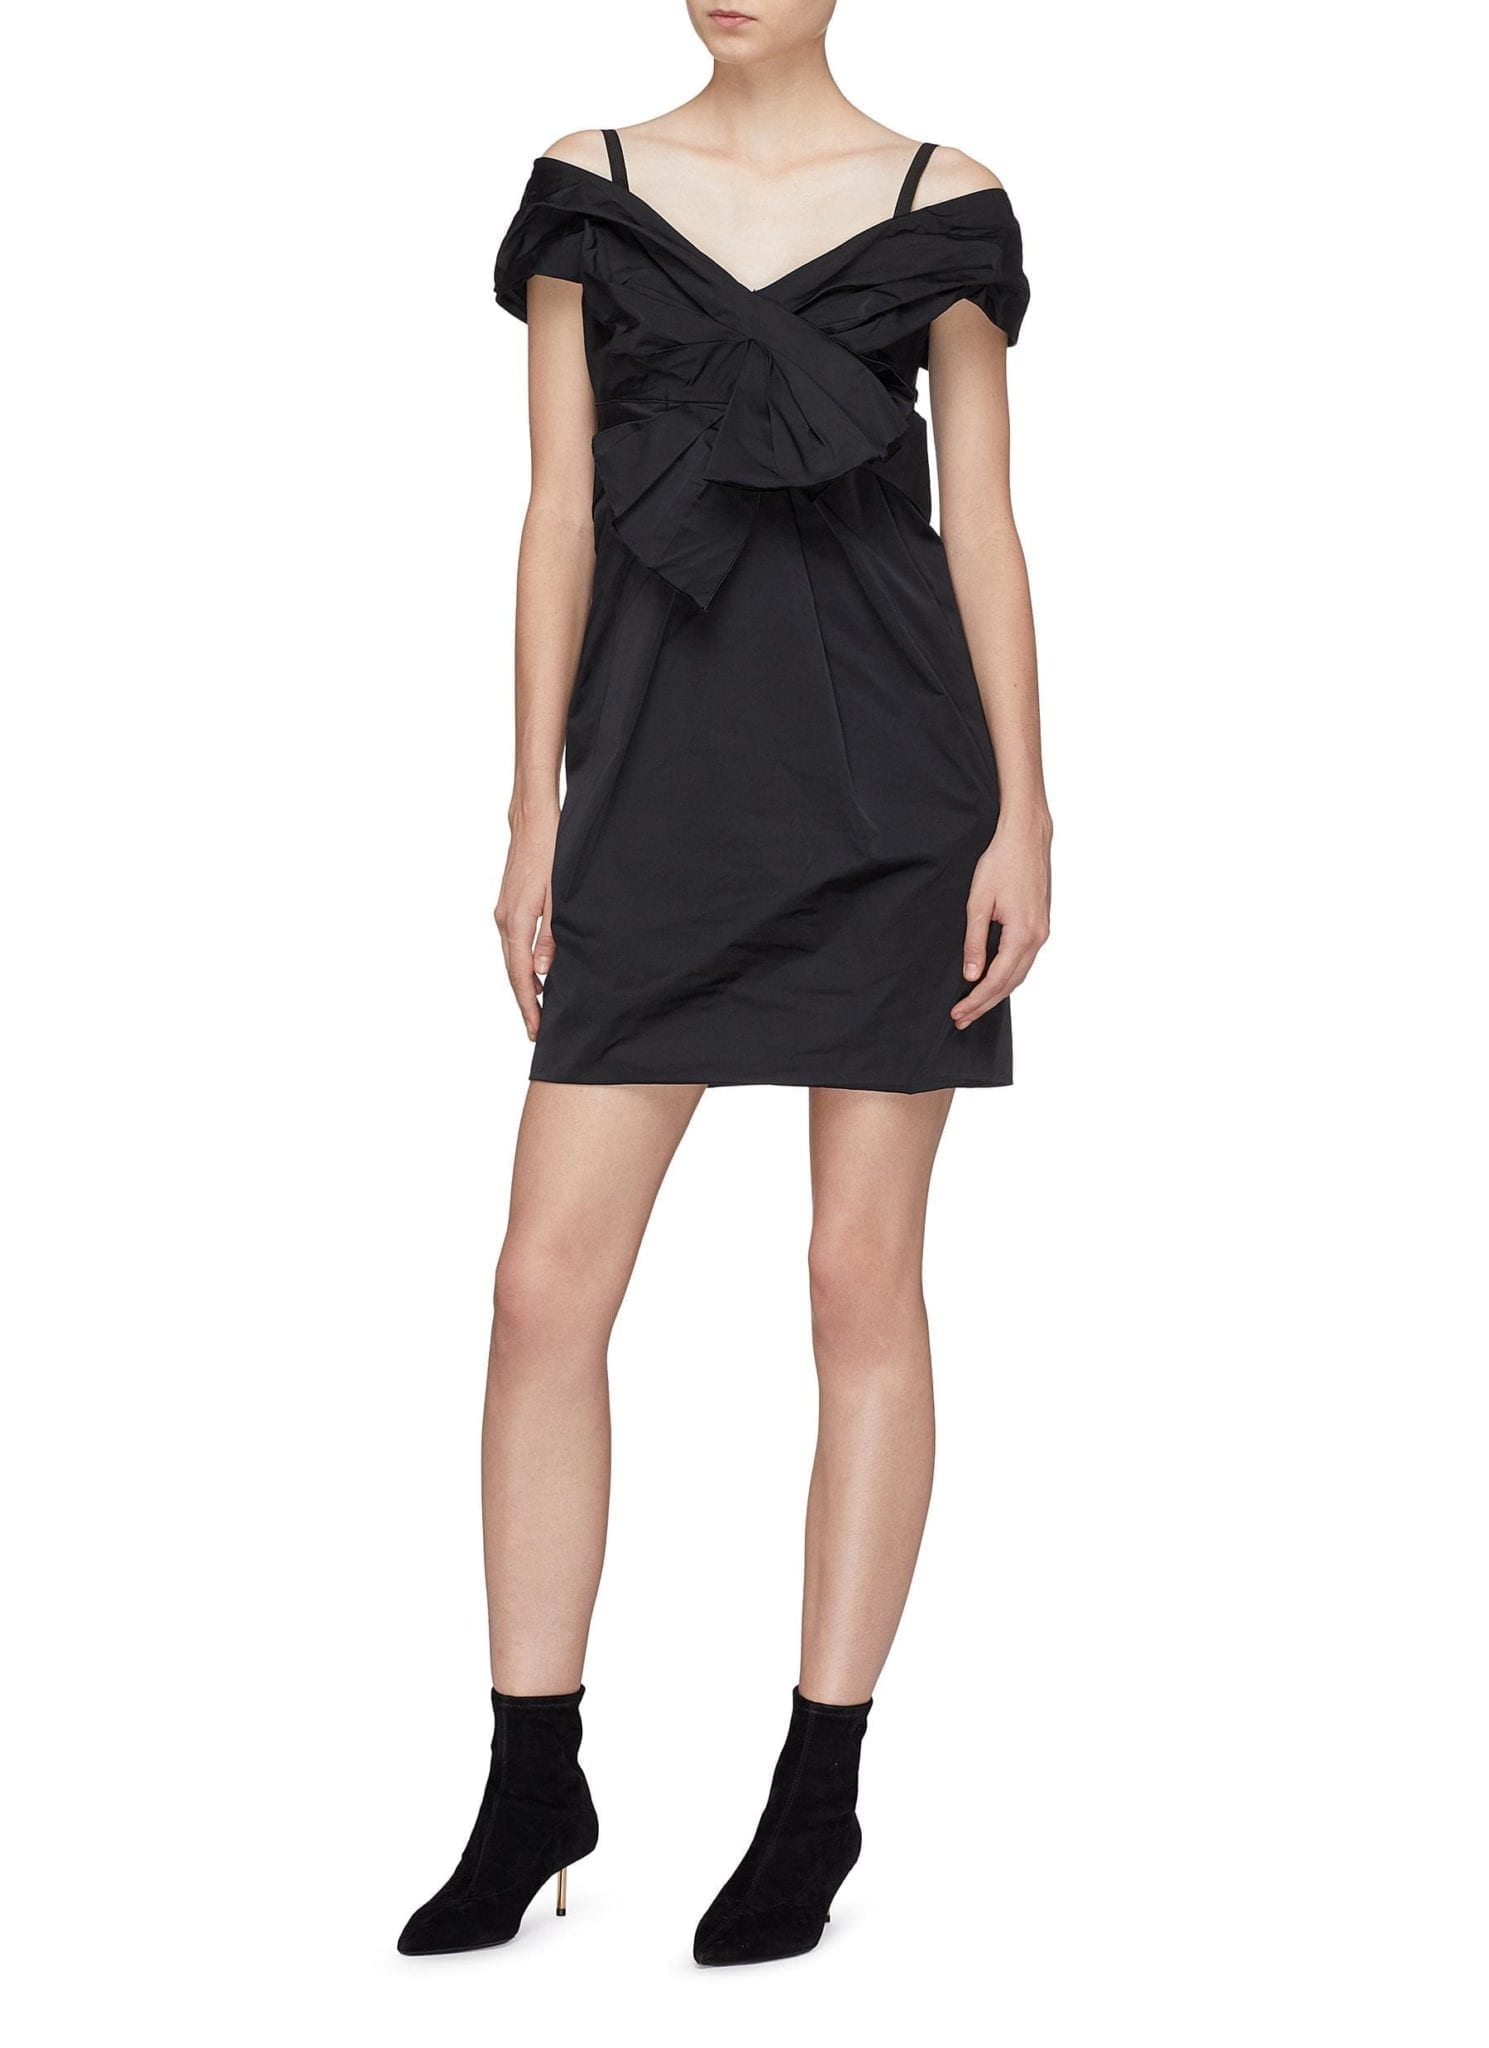 MARC JACOBS Bow Front Pleated Off-Shoulder Black Dress